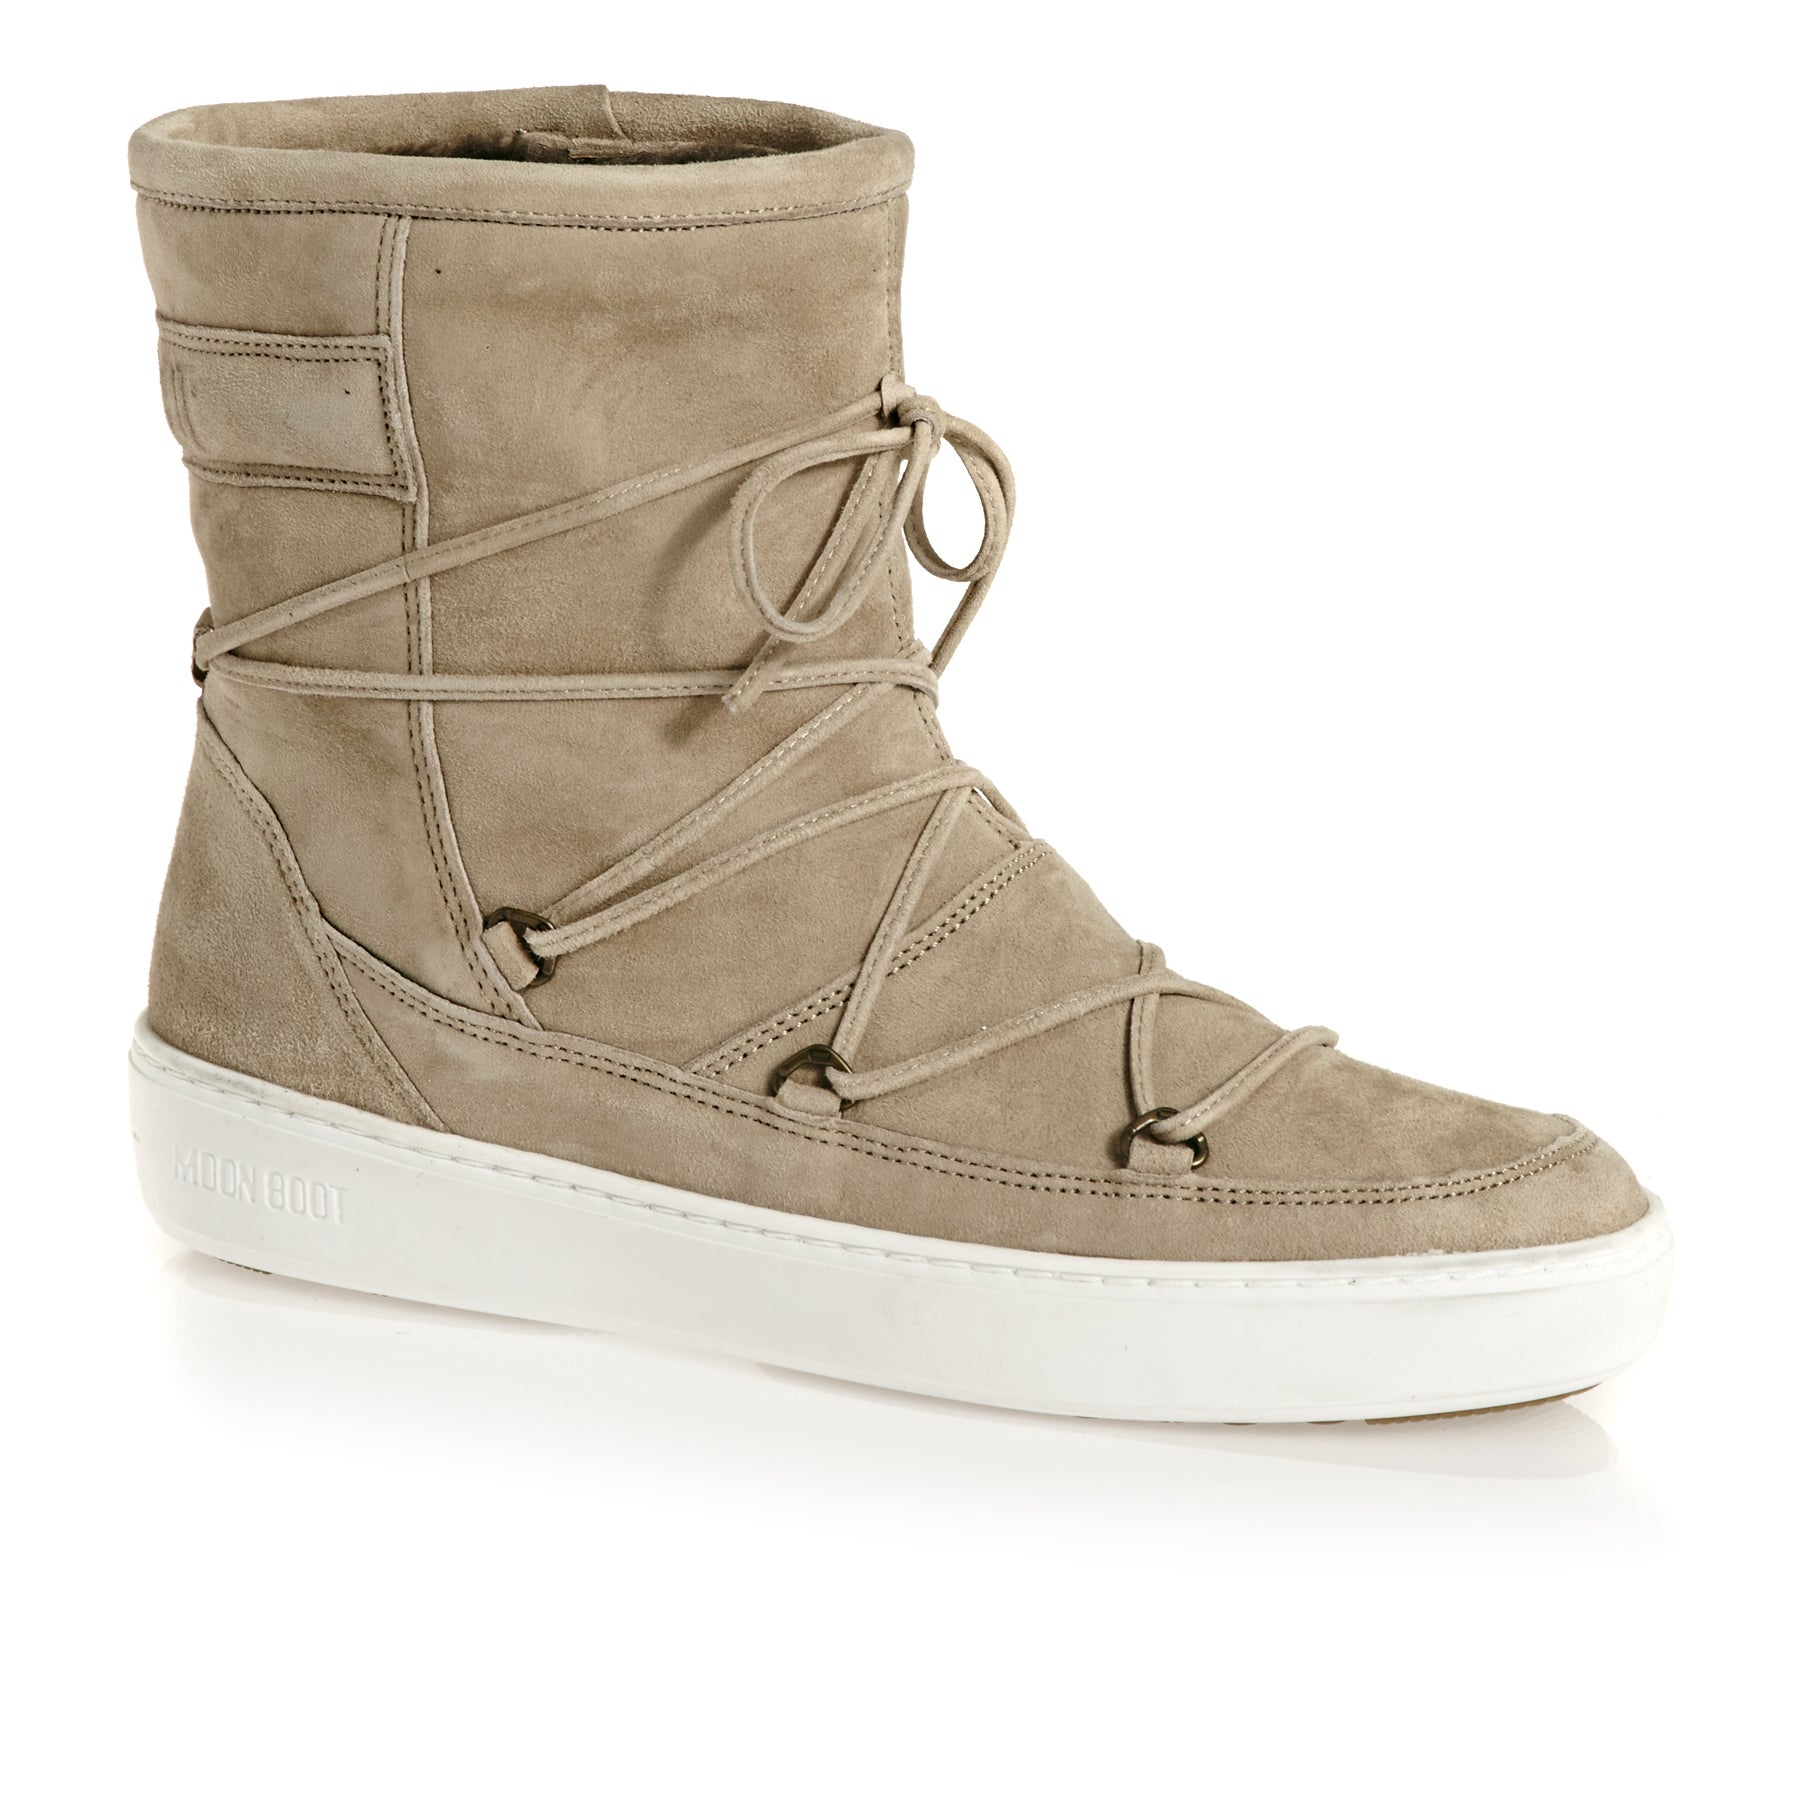 Moon Boot Pulse Mid Womens Boots - Beige